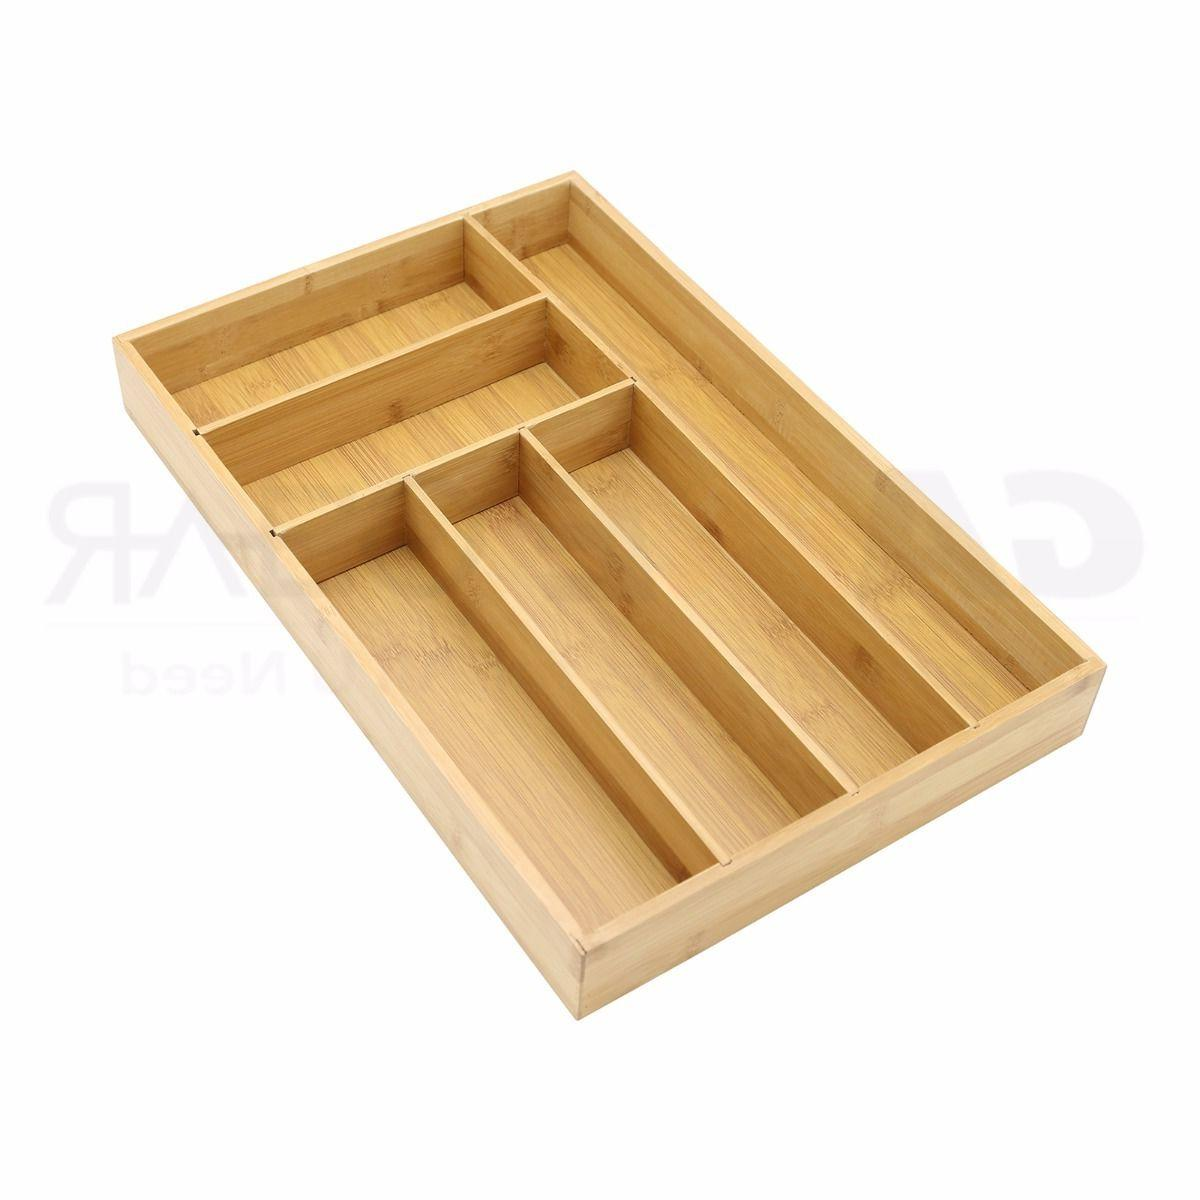 bamboo cutlery tray utensil drawer organizer flatware